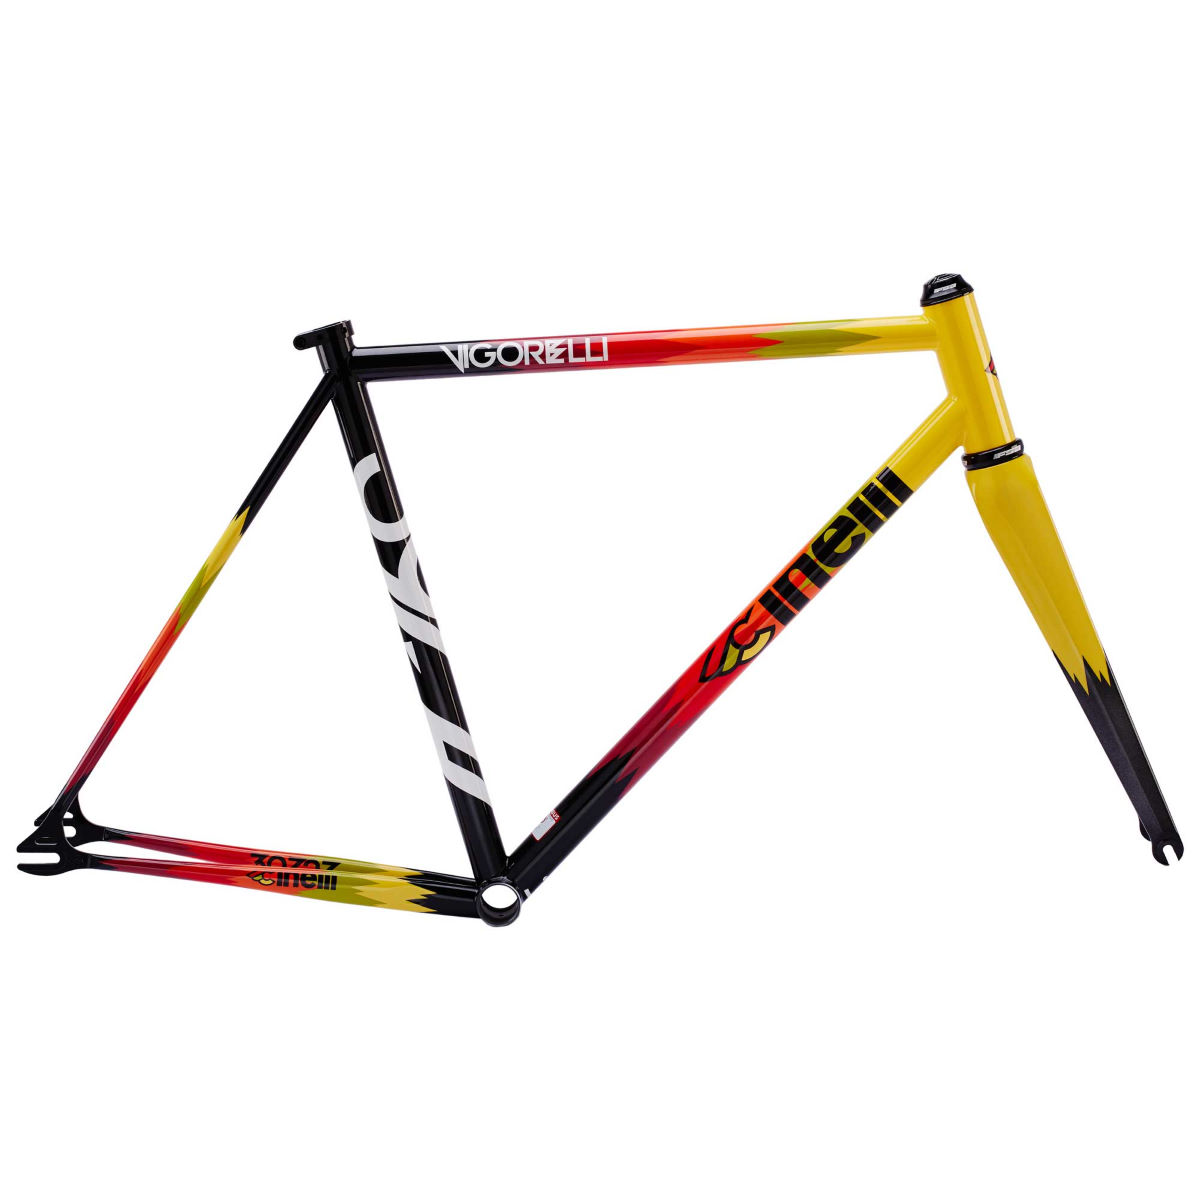 Cinelli vigorelli steel frameset 2017 internal black yellow red 2017 cd113al